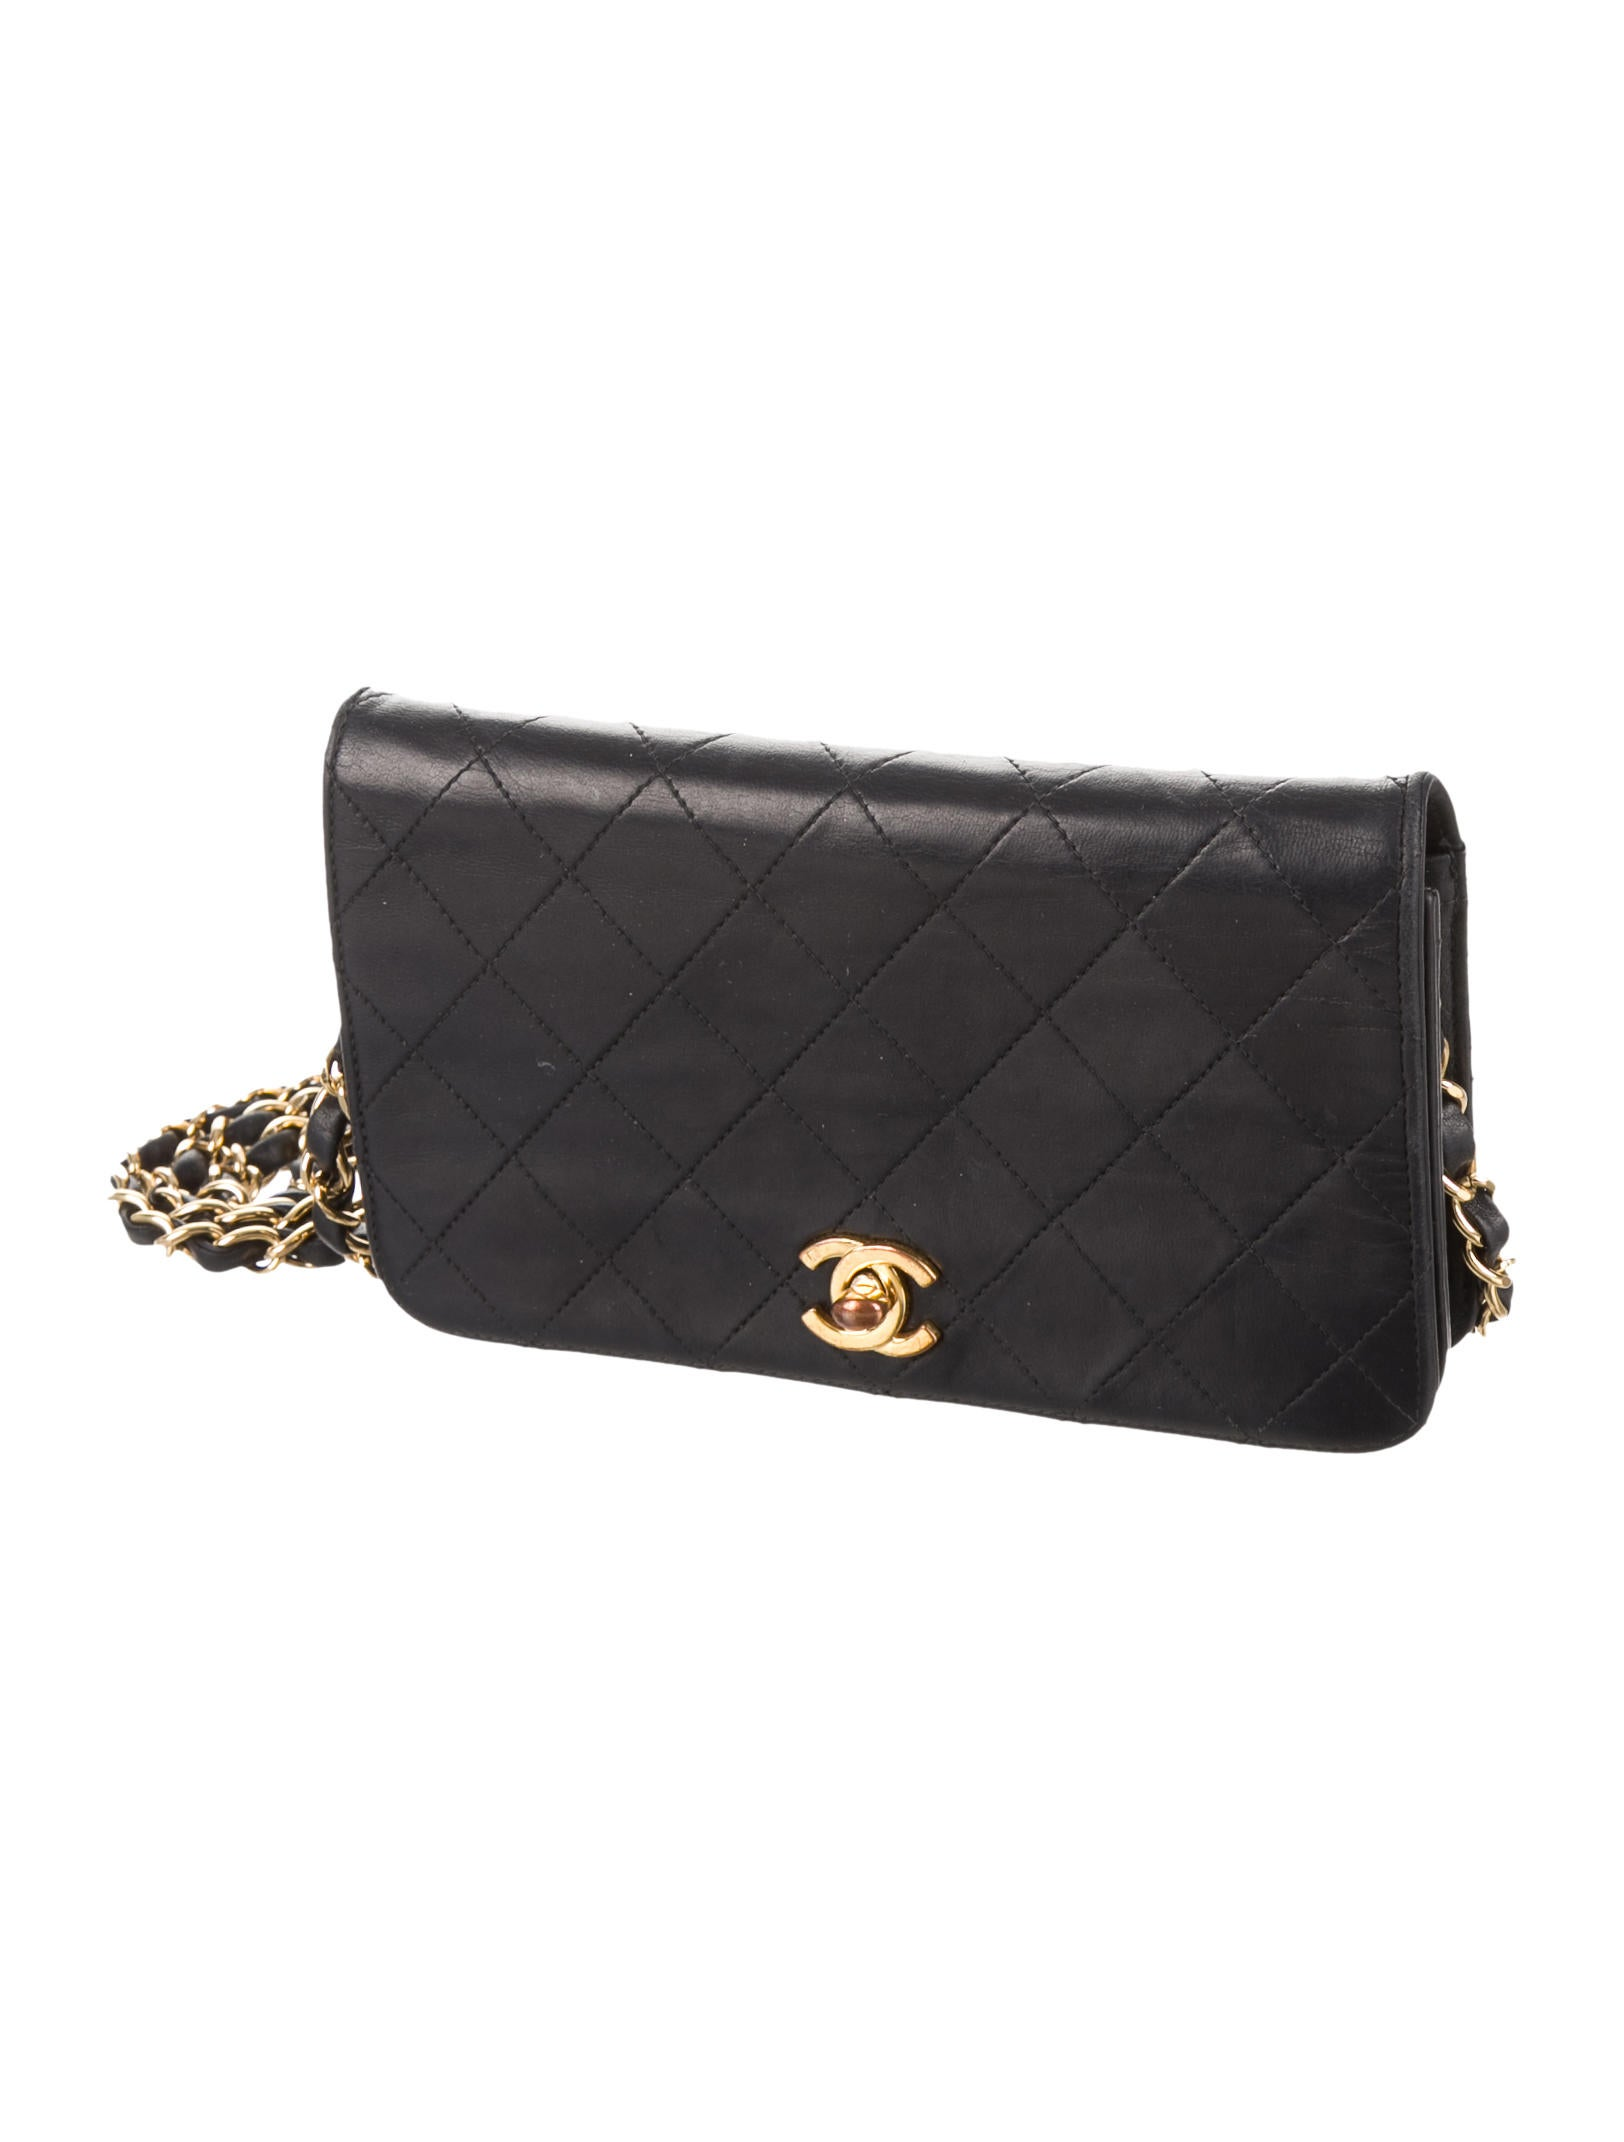 Chanel Quilted Lambskin Mini Flap Bag Handbags